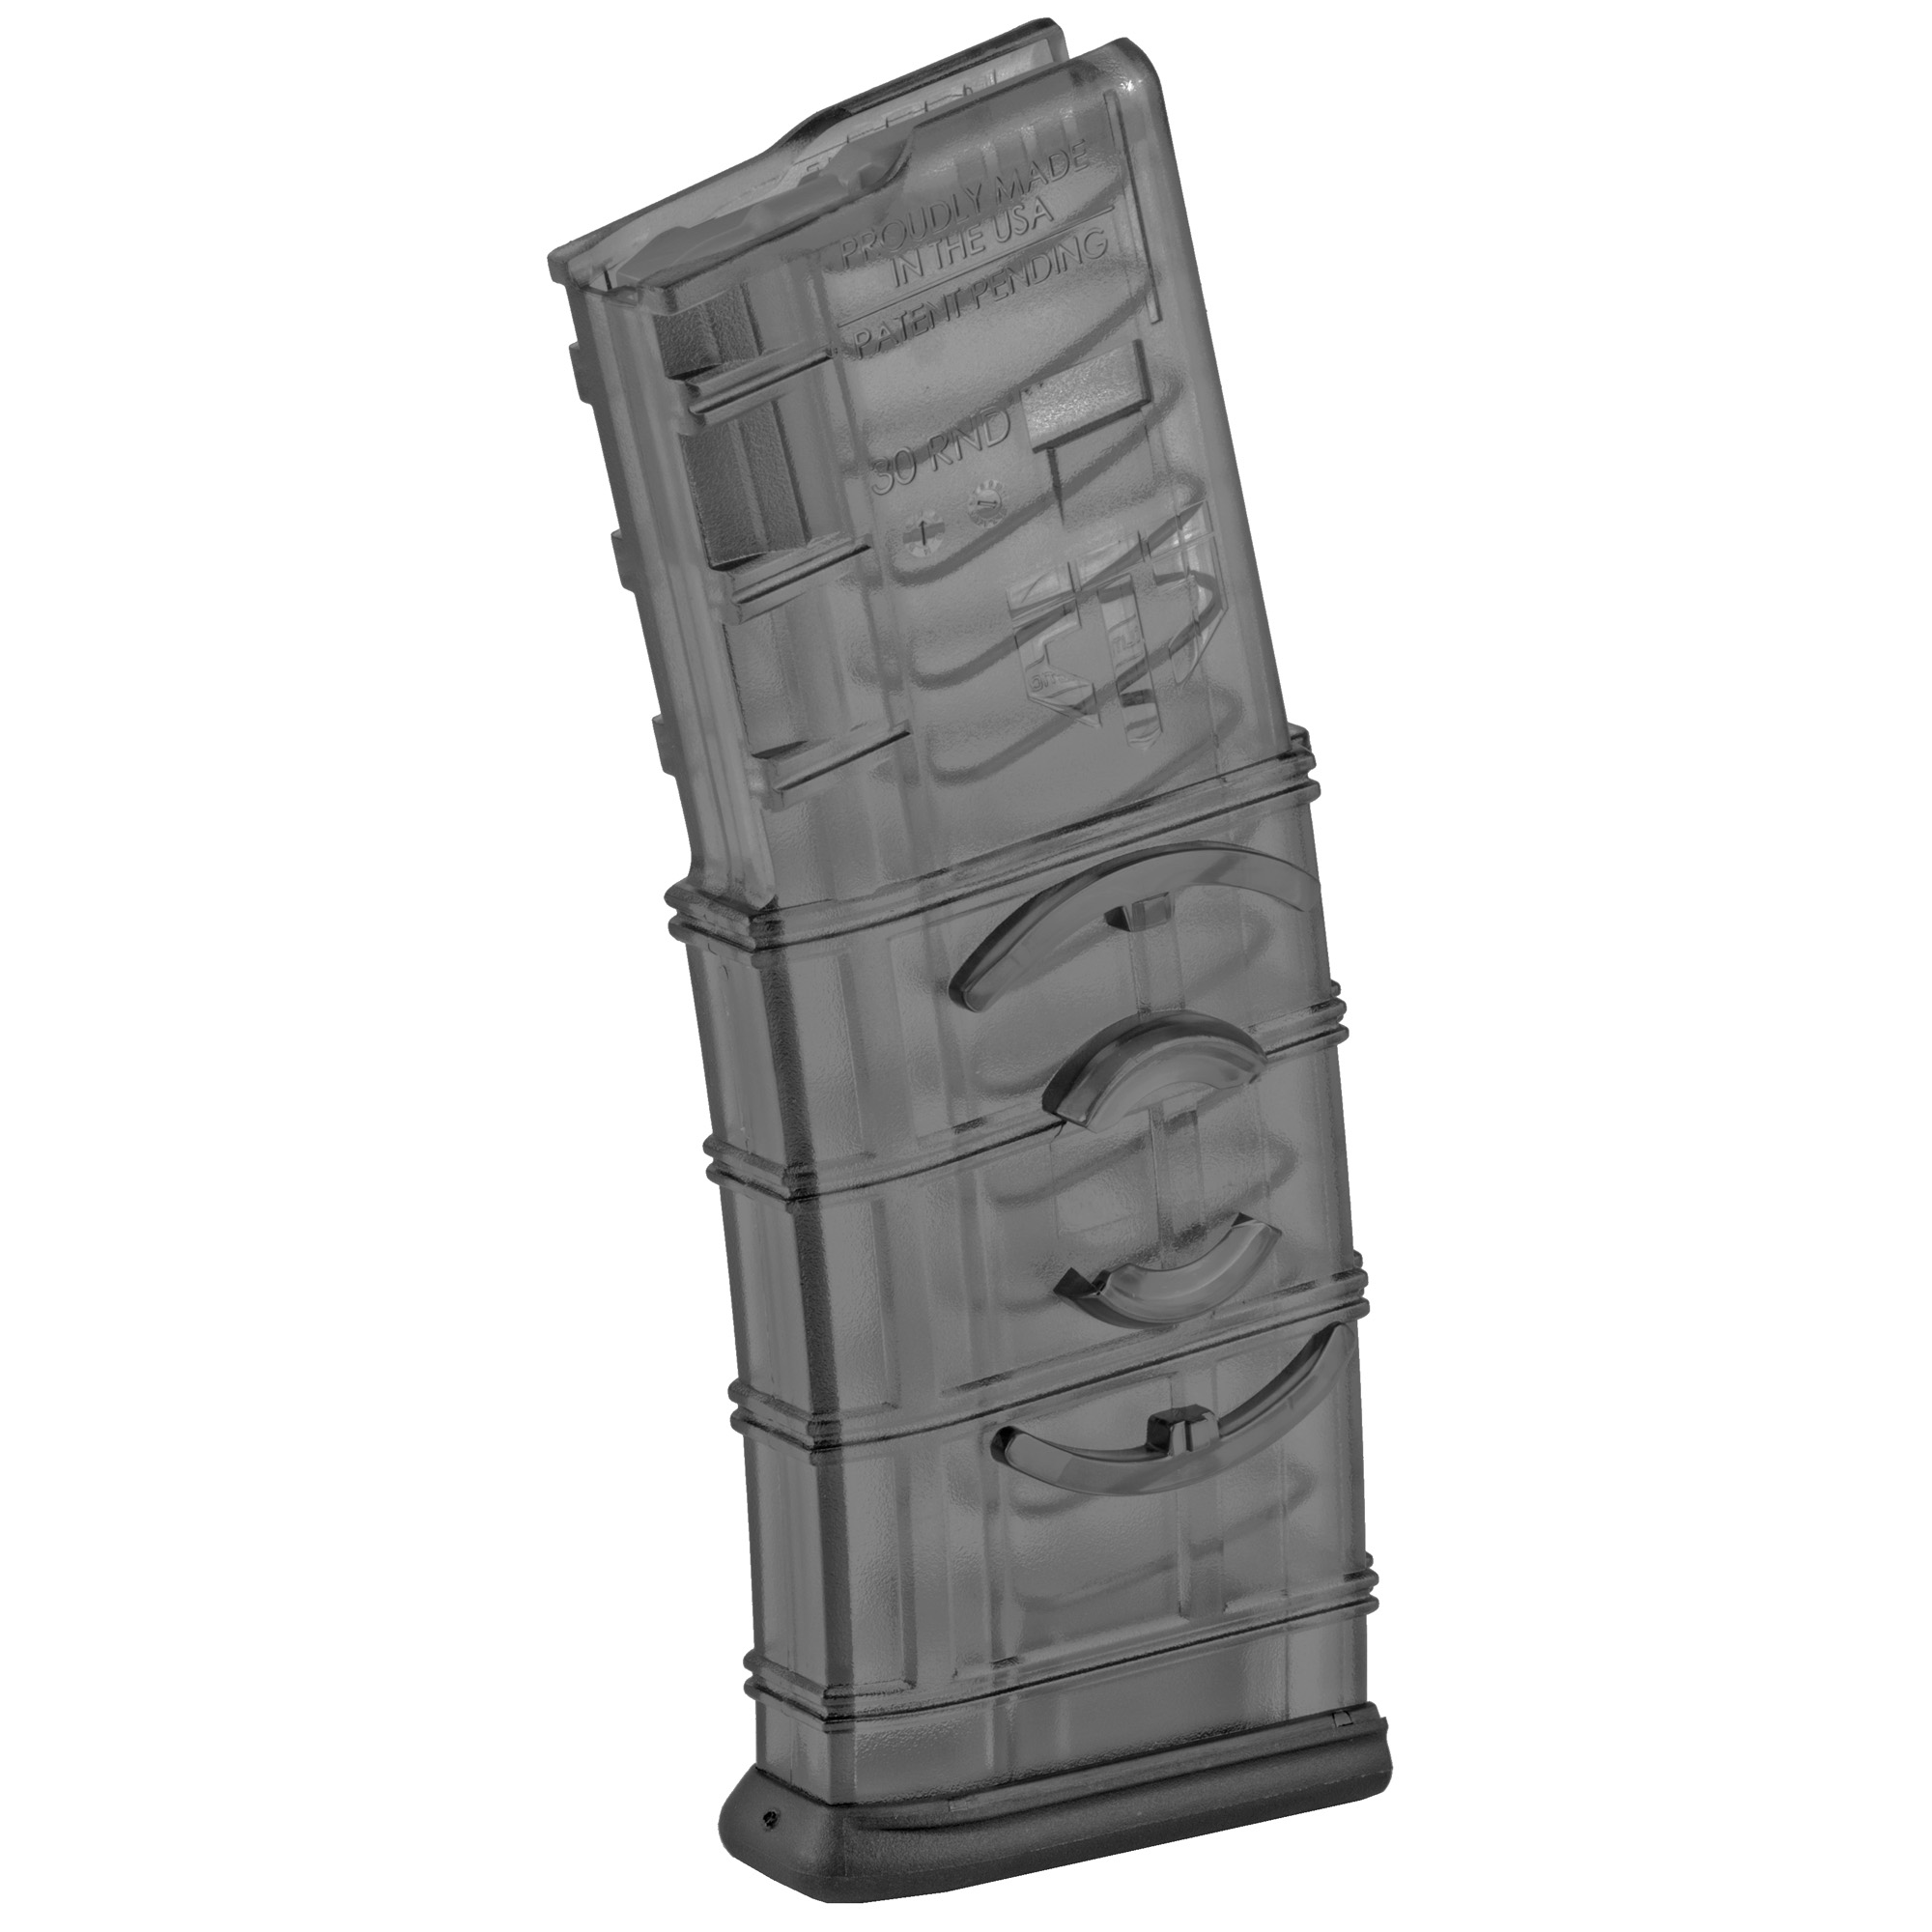 """This ETS AR-15 magazine features extreme impact resistance"""" a No-Tilt follower"""" and a translucent body that allows you to see your ammo count and type. A Built-in coupler allows multiple mags to be connected together in seconds with no tools or extra parts."""